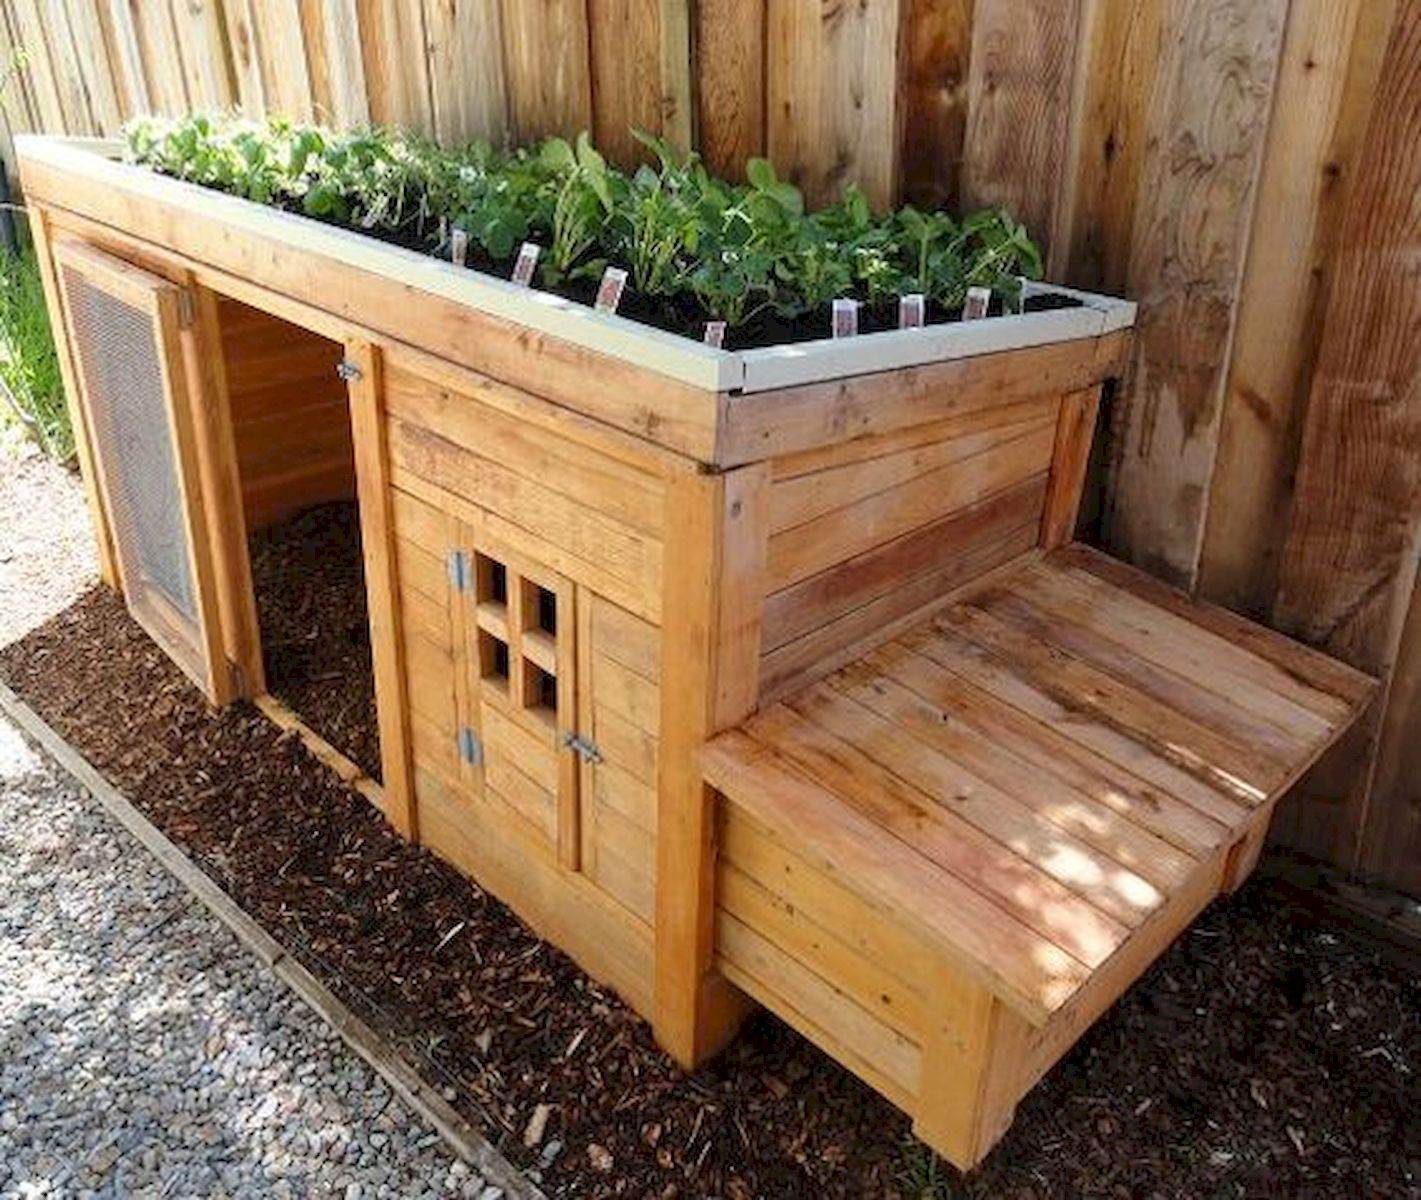 50 Inspiring Small Vegetable Garden Ideas (9)